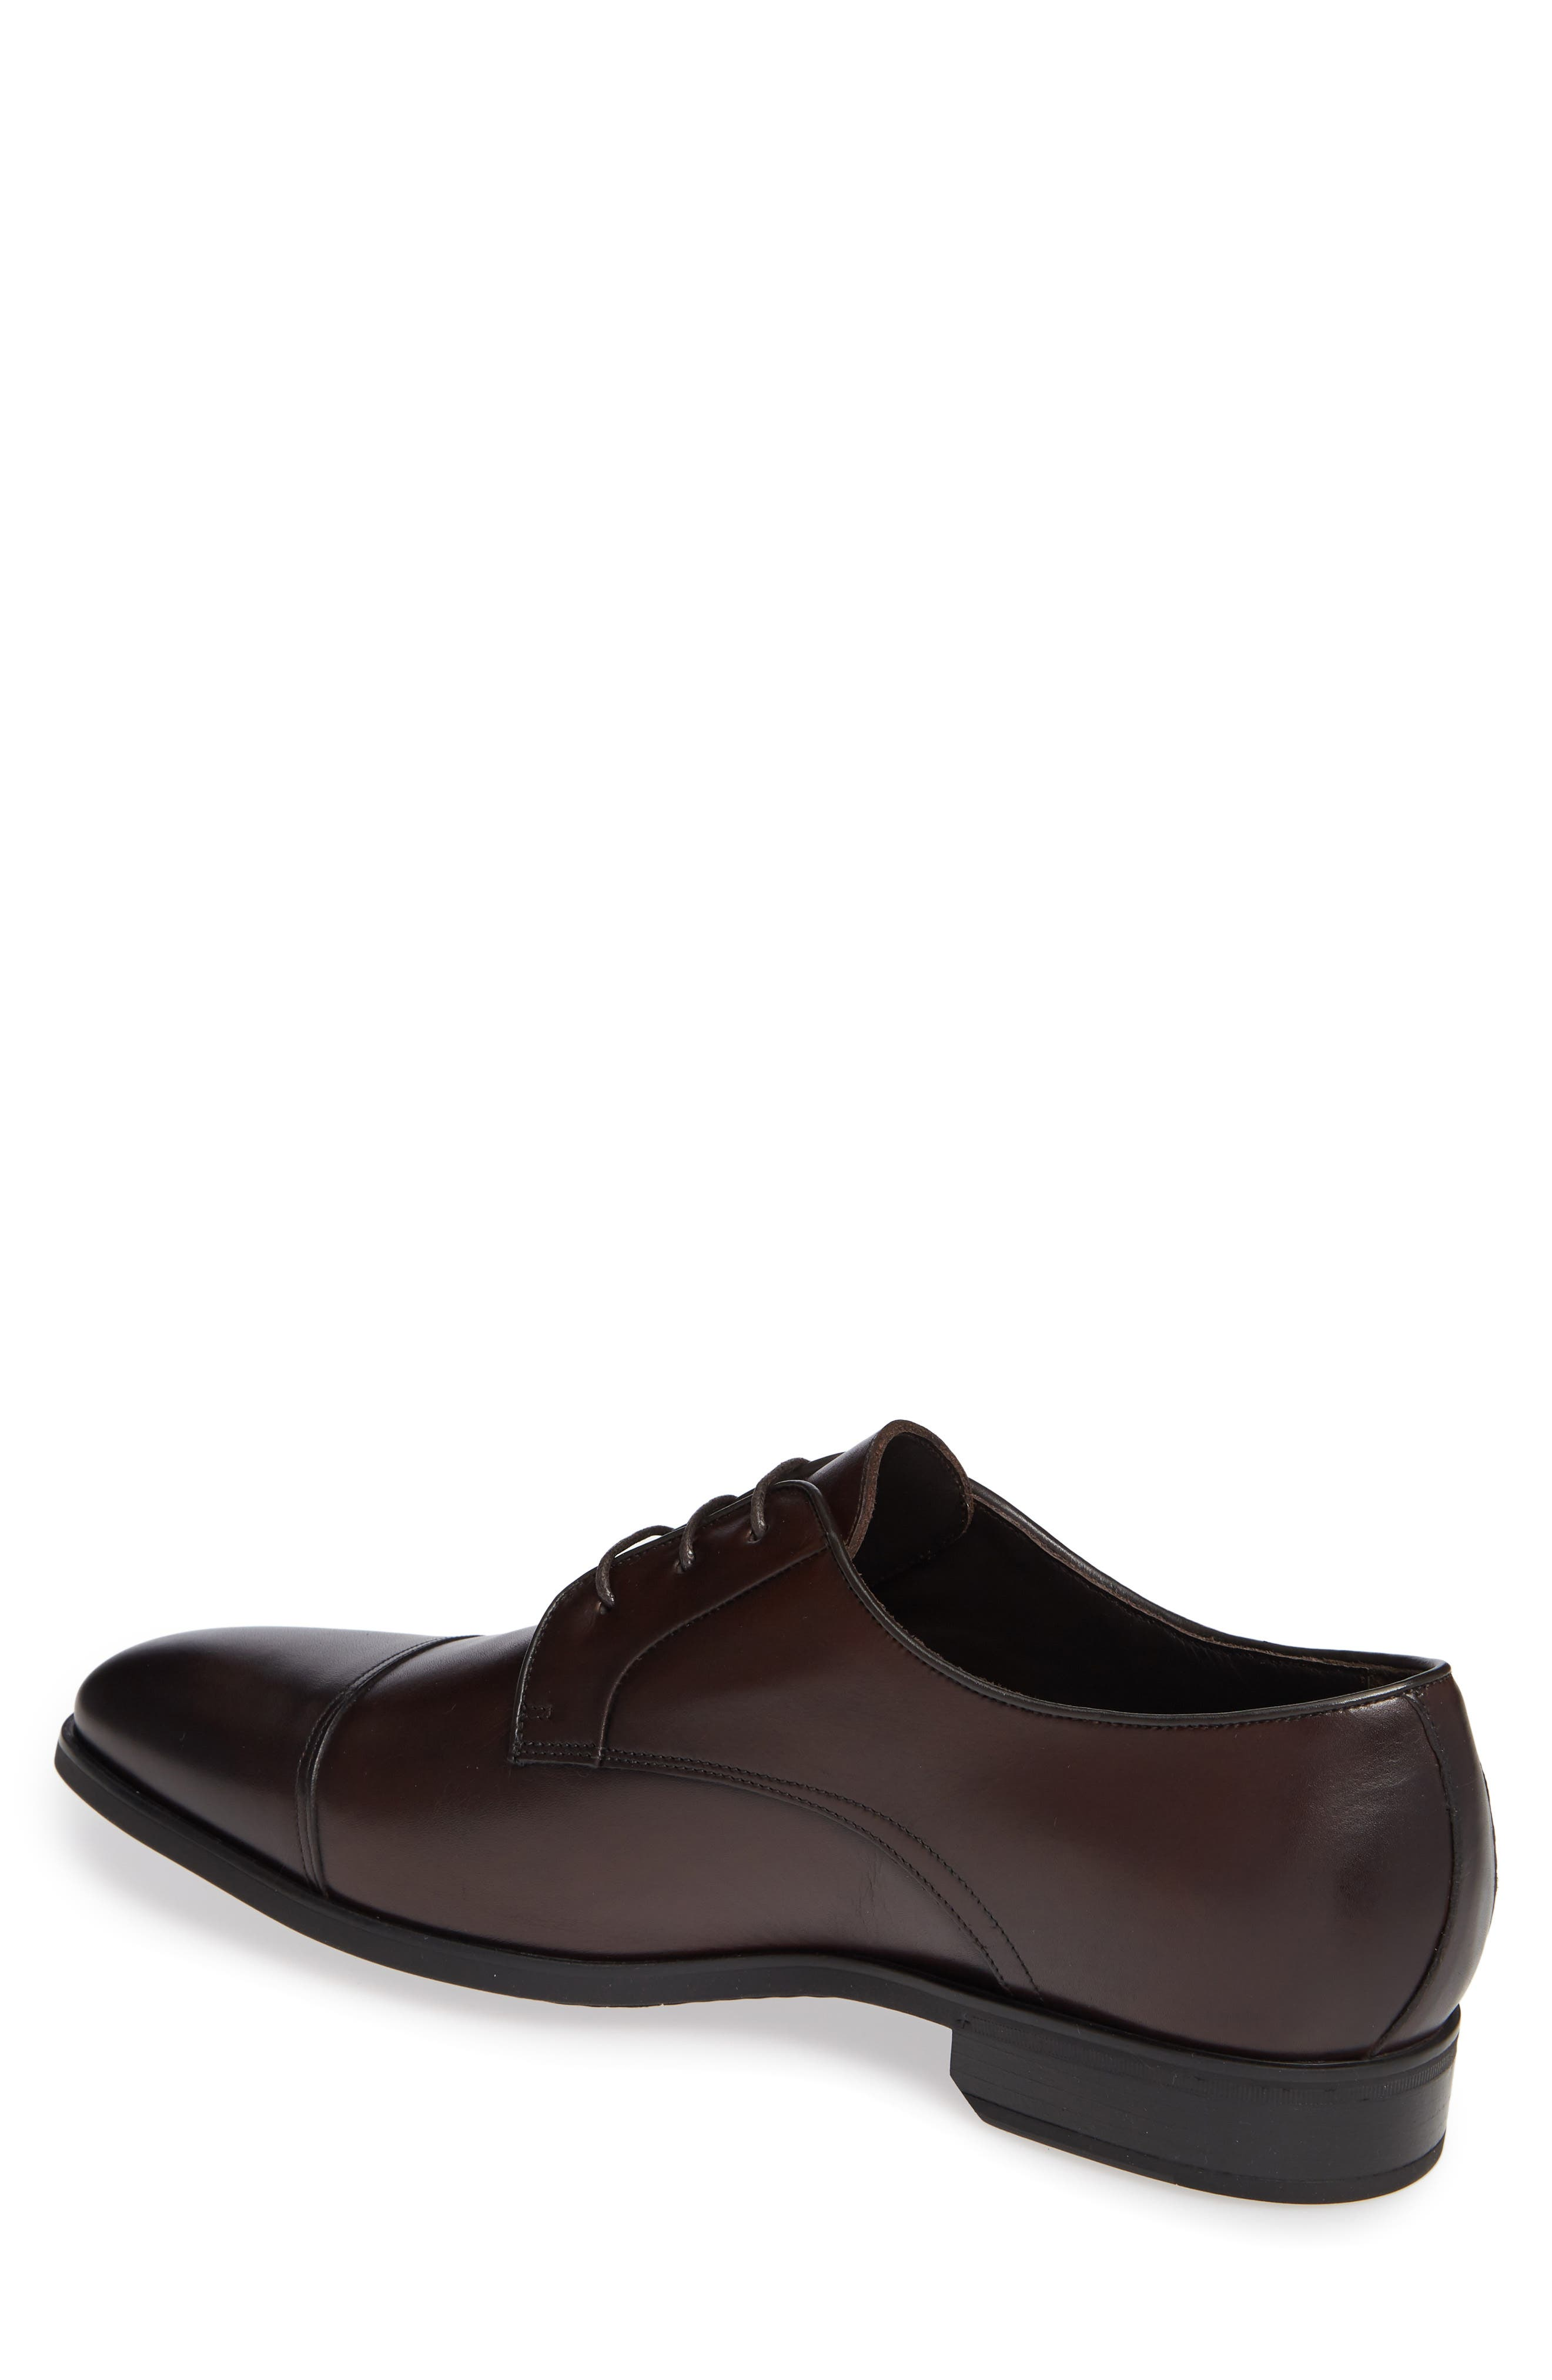 Aberdeen Cap Toe Derby,                             Alternate thumbnail 2, color,                             BERRY/ TMORO LEATHER